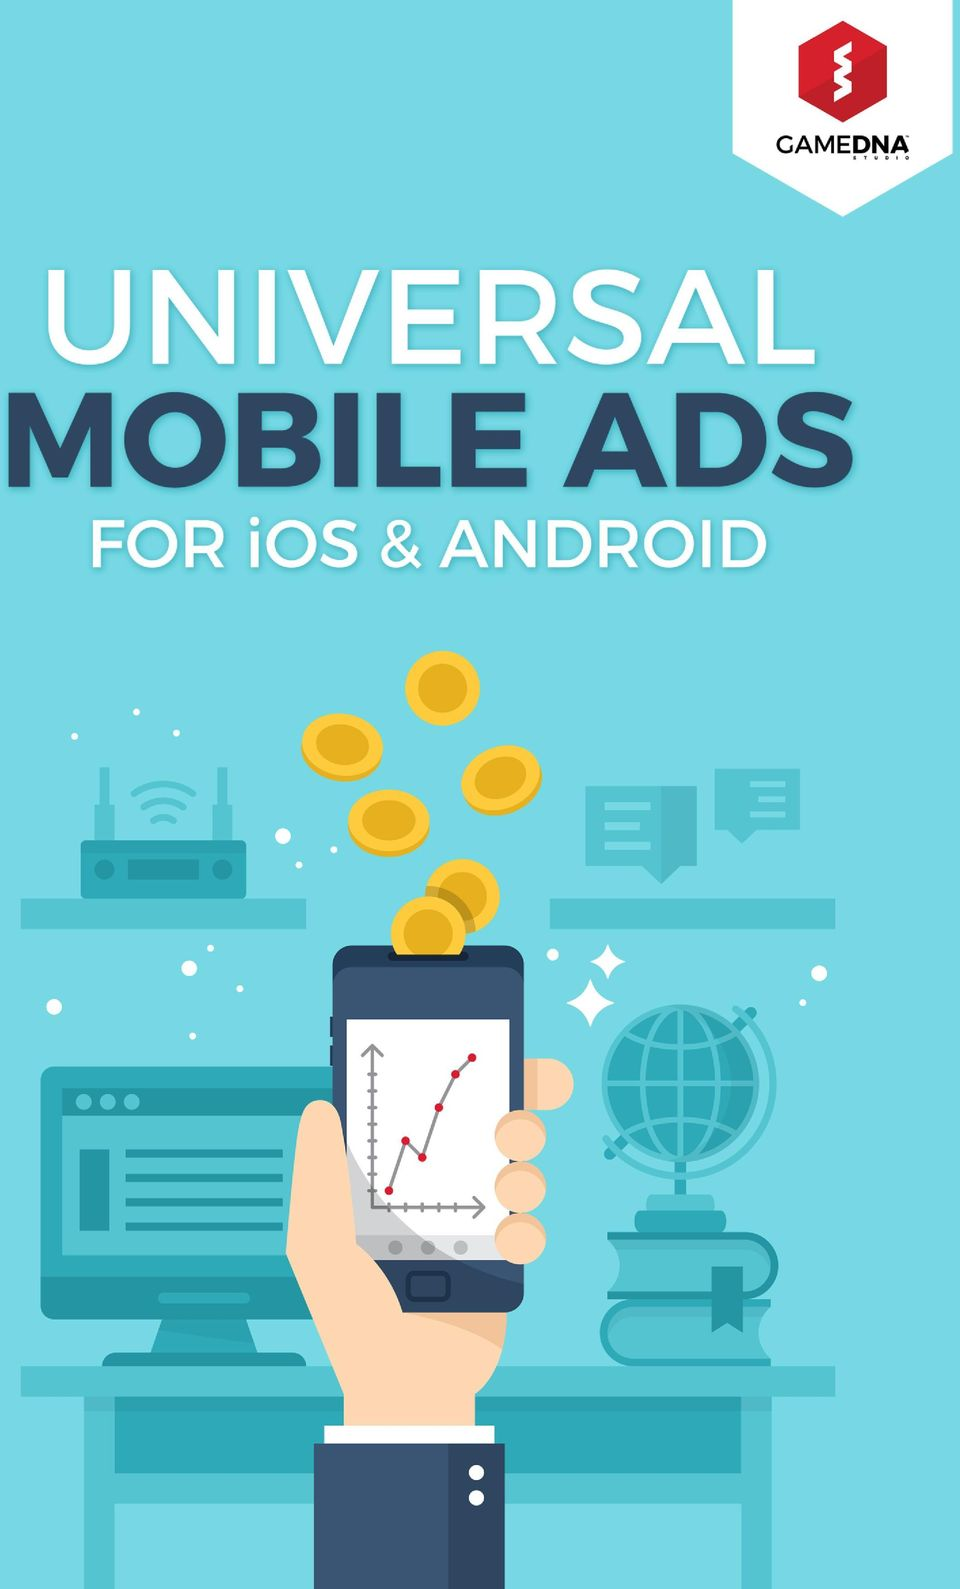 Universal Mobile Ads is a plugin for Unreal Engine 4 that